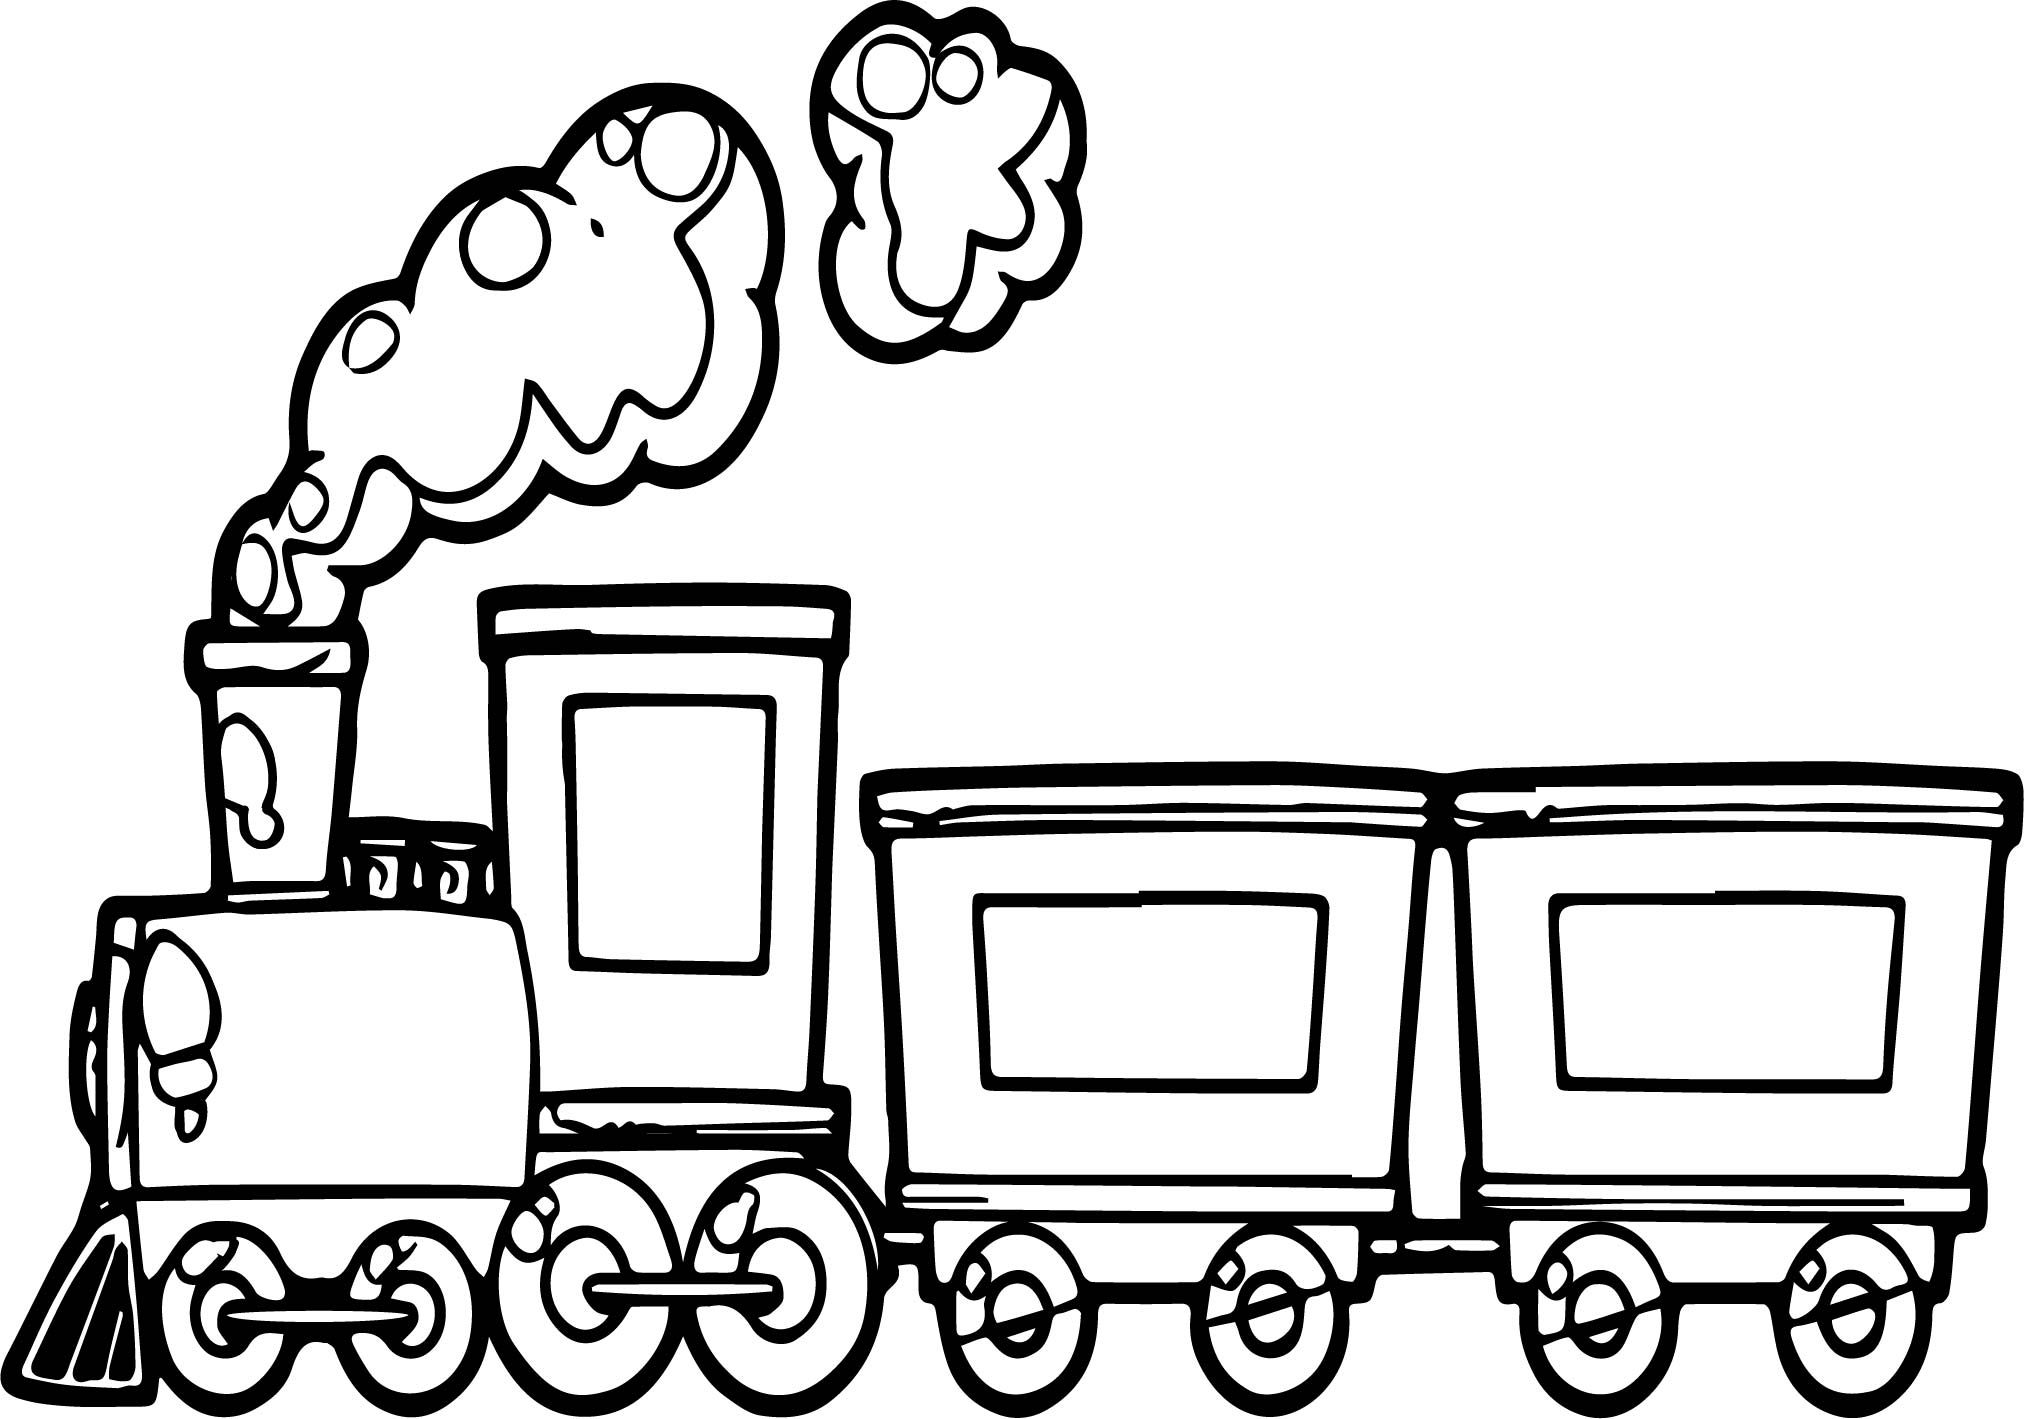 Funny Cartoon Train Coloring Page Train Coloring Pages Train